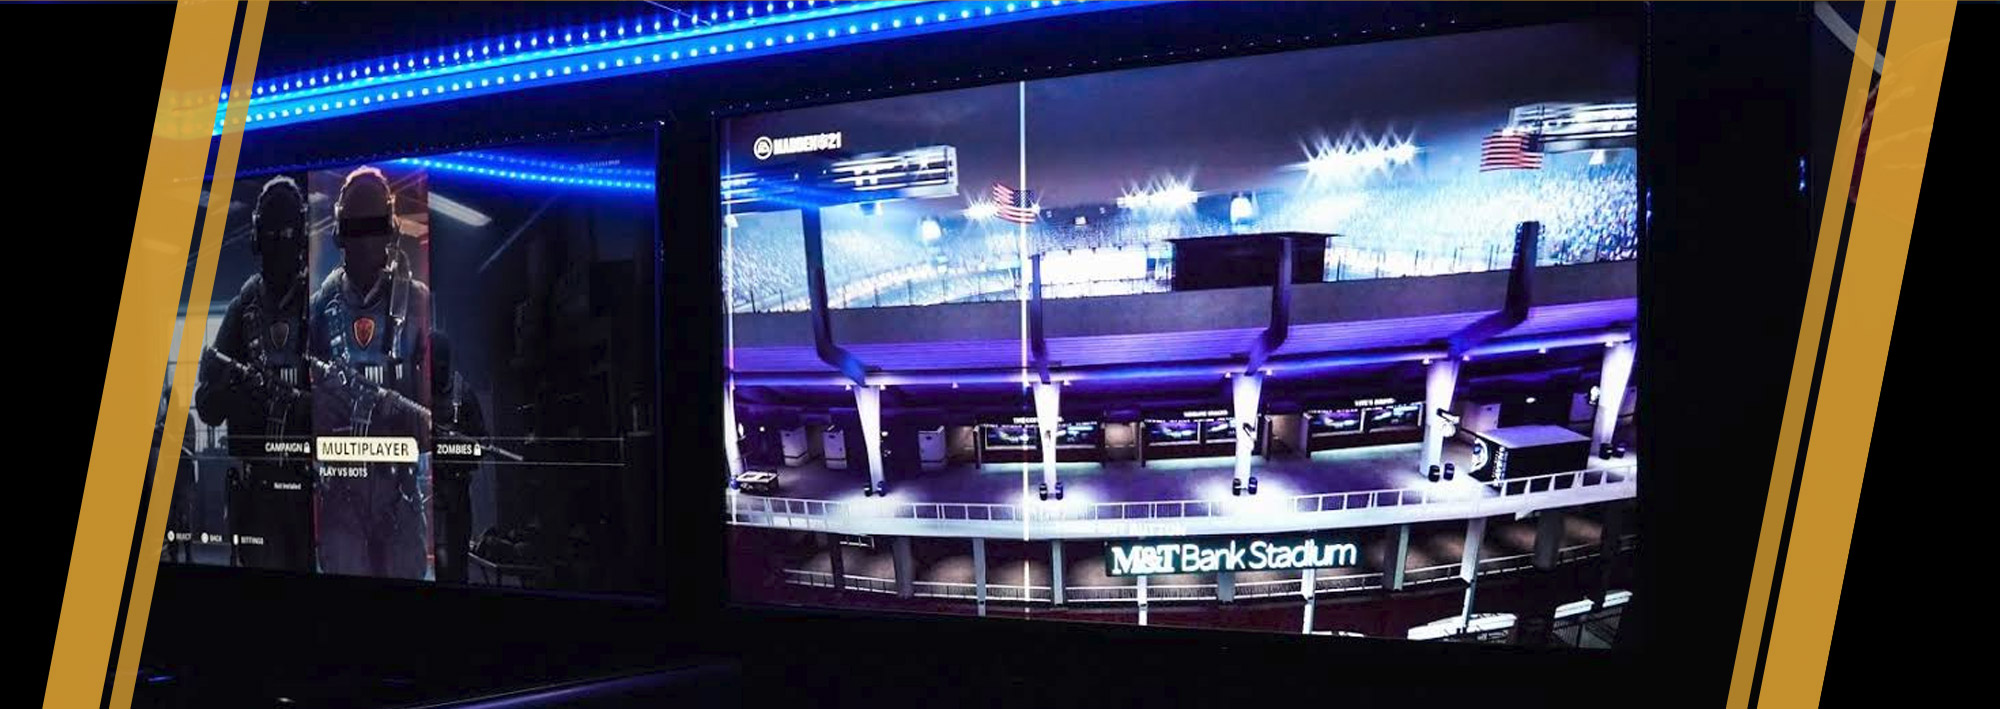 Inside the gaming trailer there are 4 widescreen 50-inch HD screens, allowing 2 to 3 players on each tv